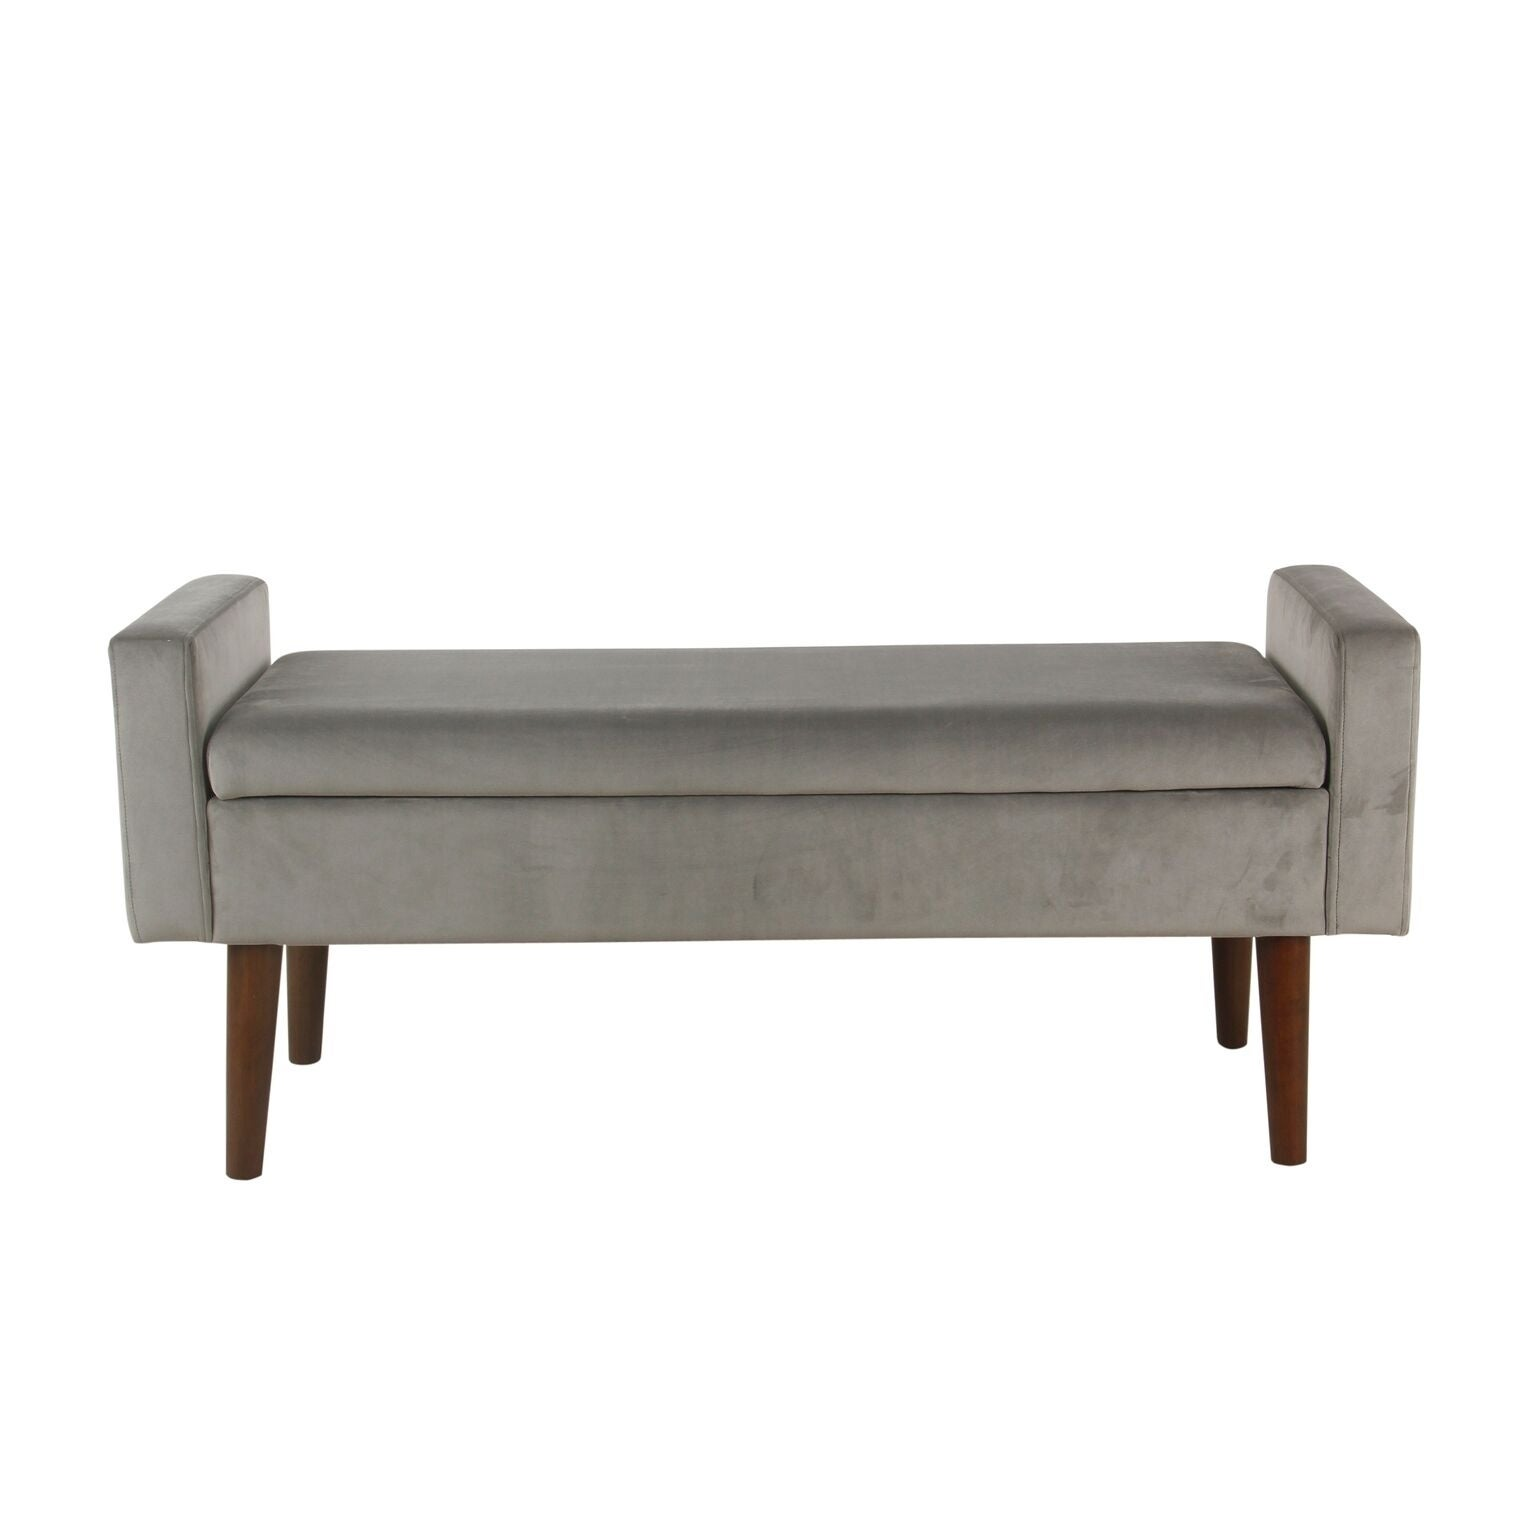 Genial Shop Palm Canyon Posas Velvet Storage Bench   Gray   On Sale   Free  Shipping Today   Overstock.com   20594250